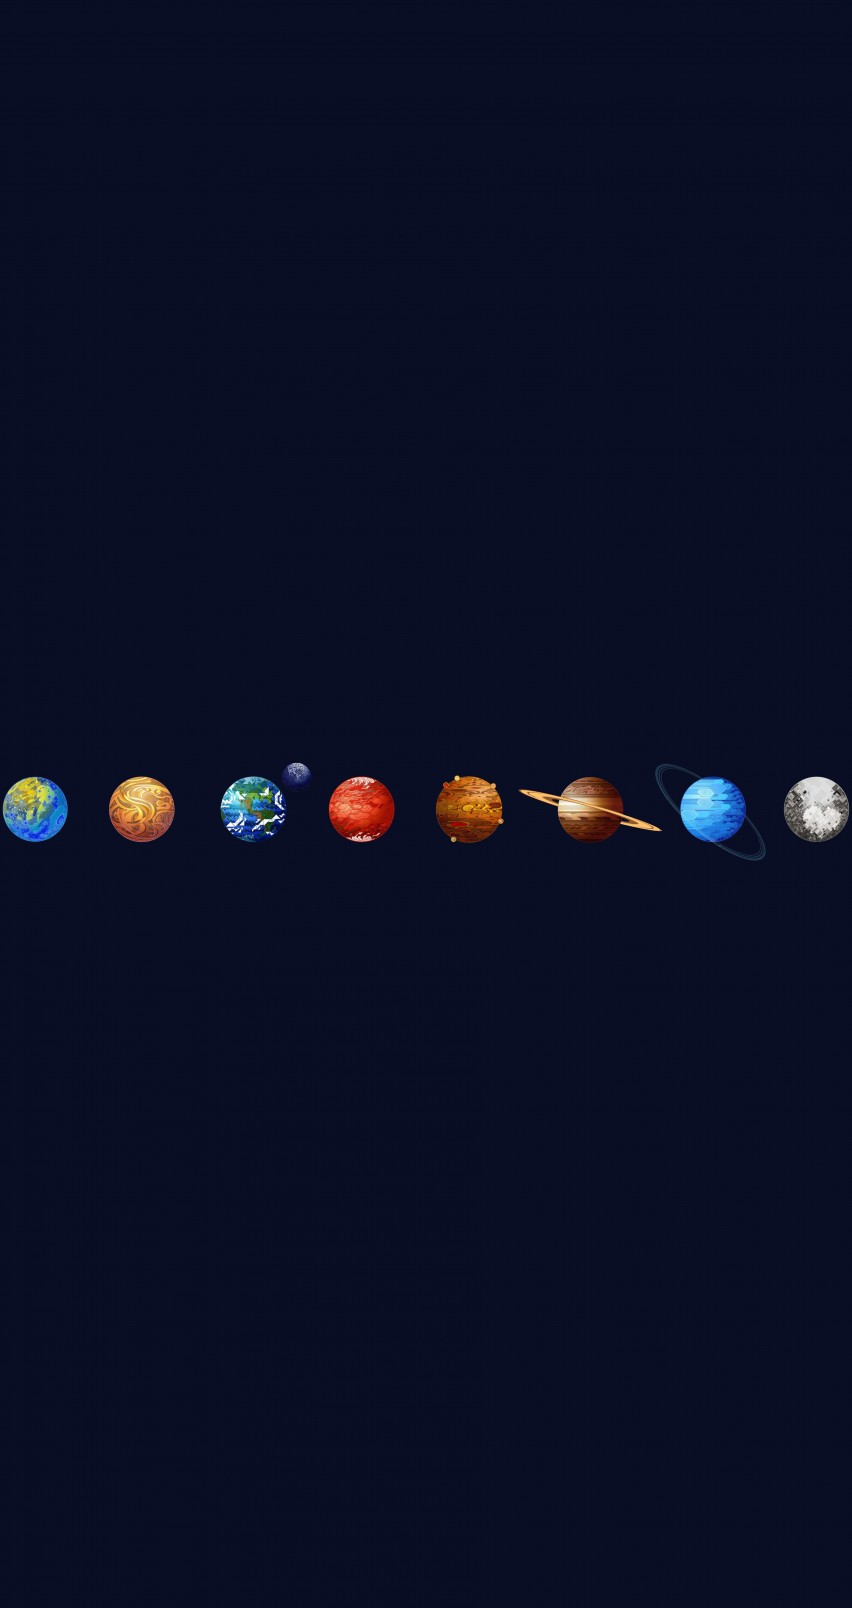 Solar System Wallpaper for Apple iPhone 6 / 6s